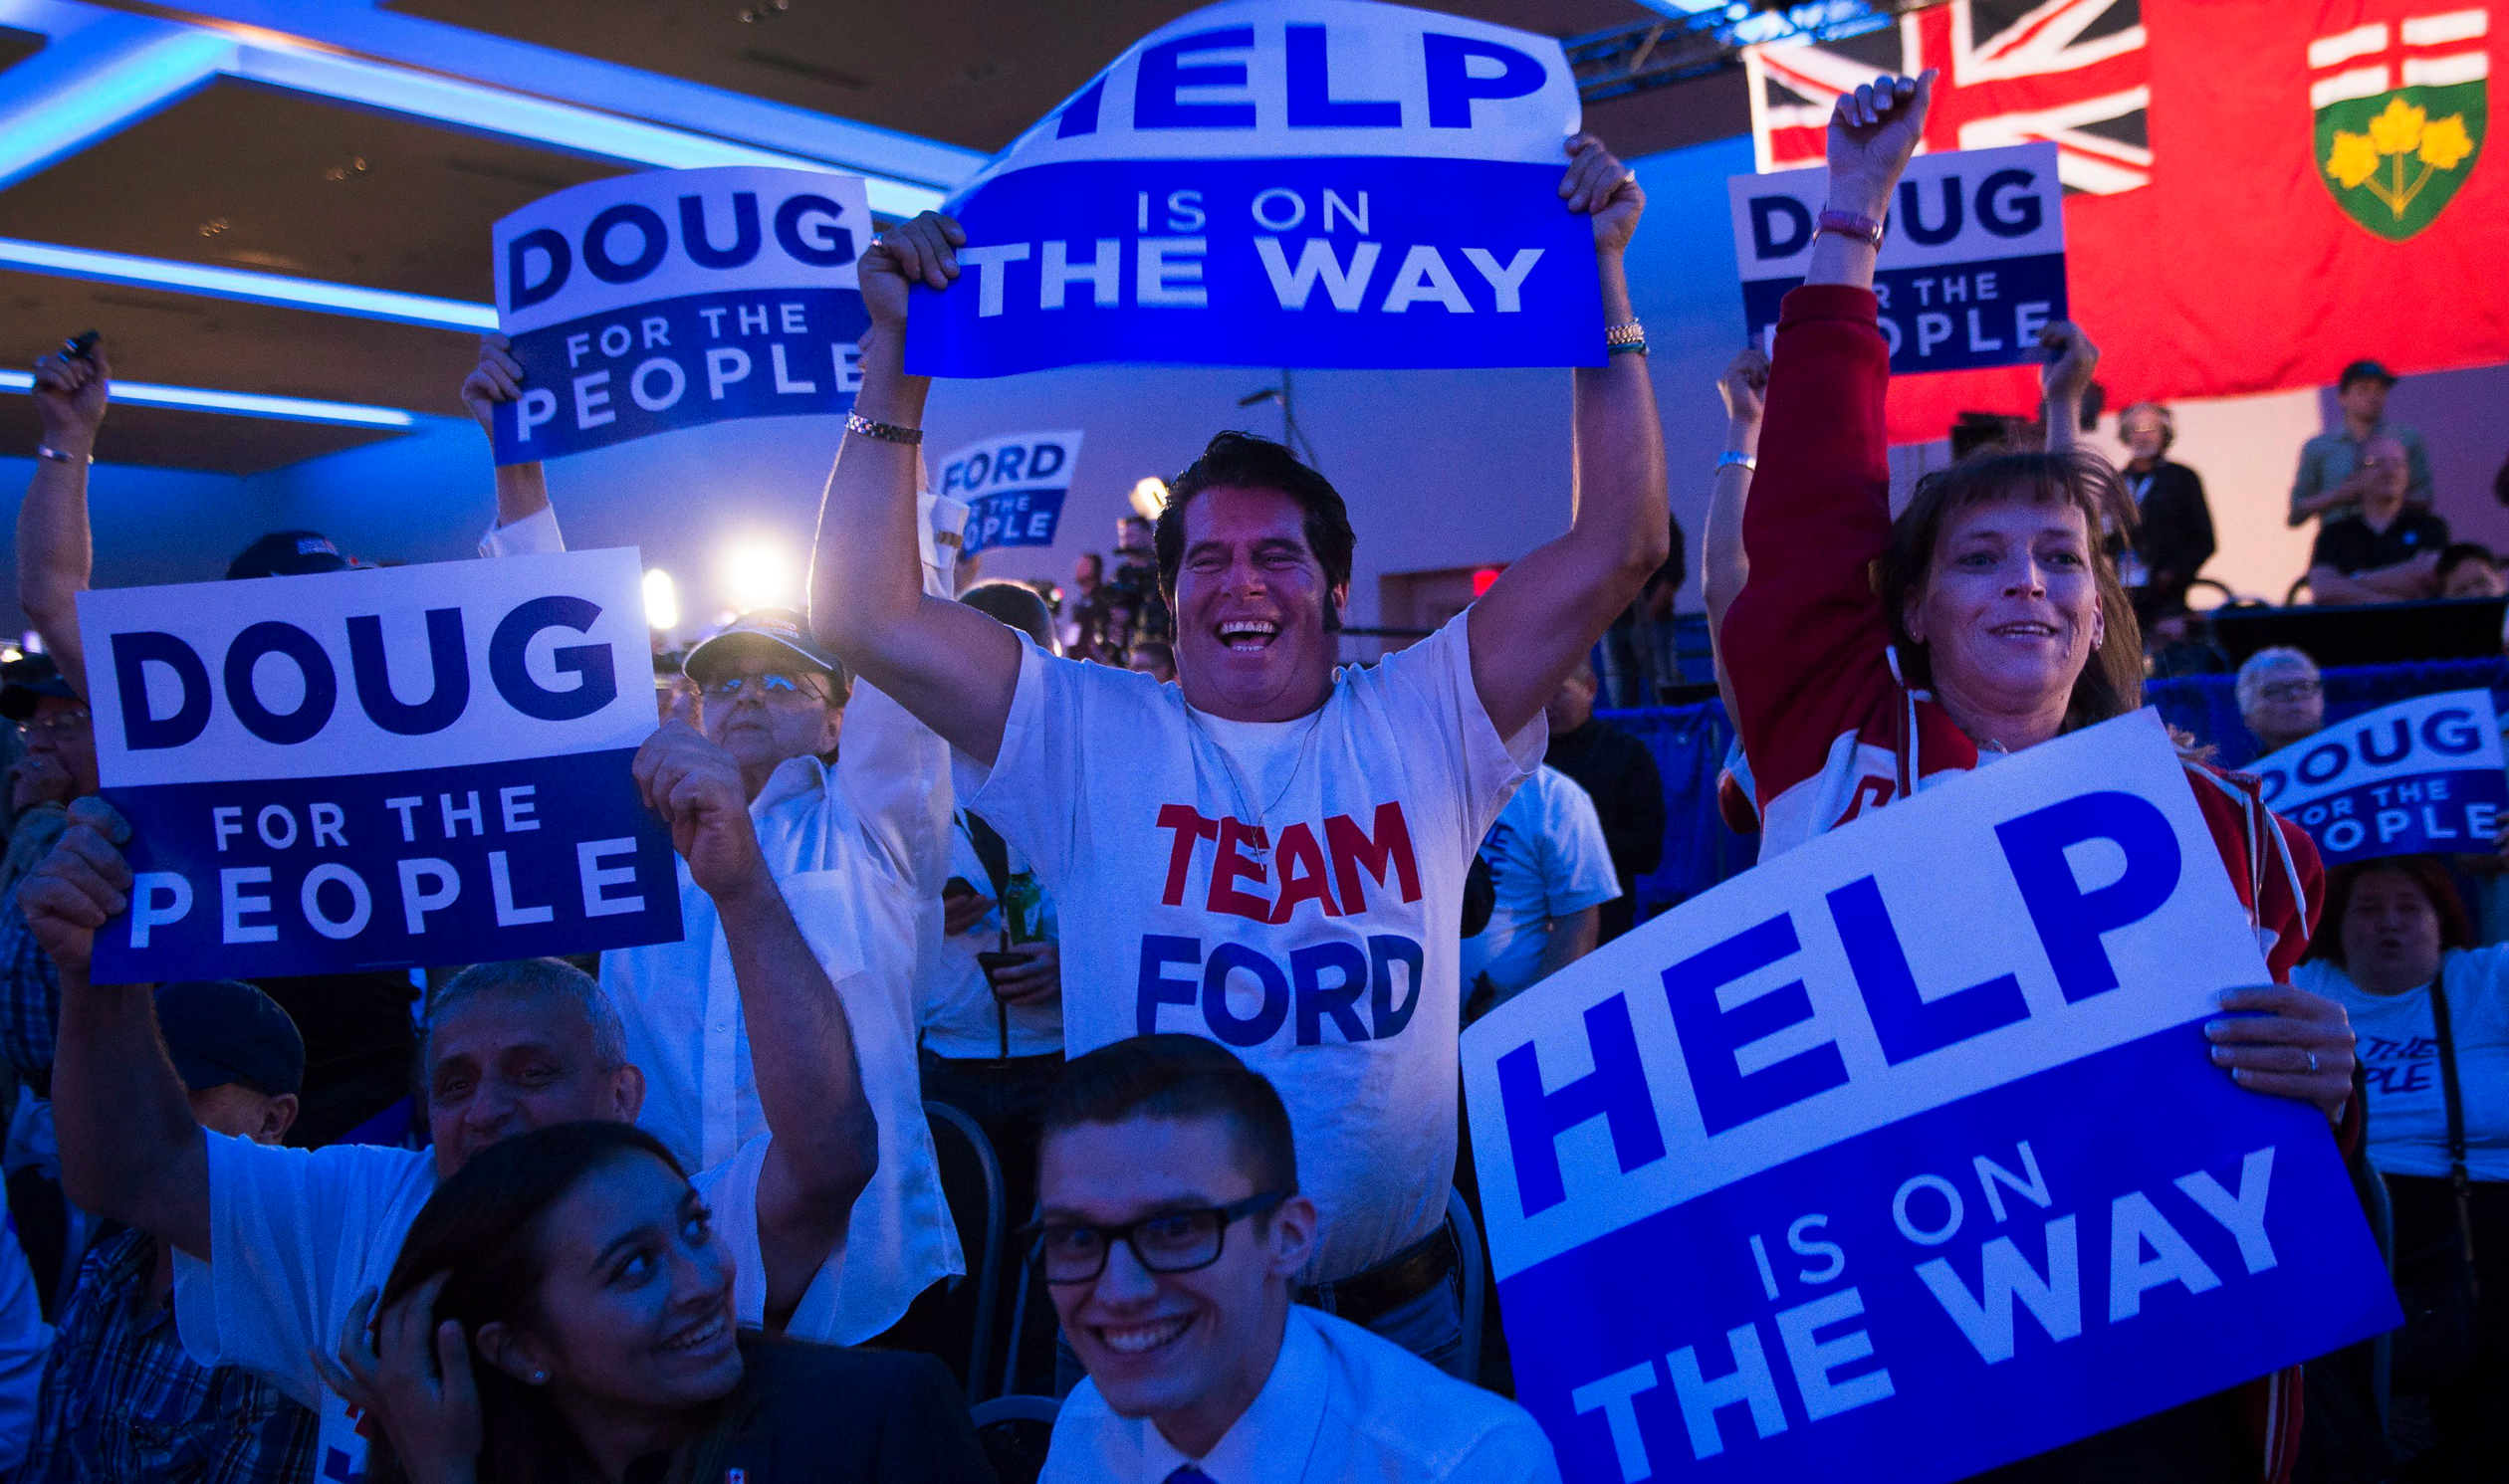 Ontario PC supporters react after Doug Ford was elected premier of Ontario on June 7, 2018. THE CANADIAN PRESS/Nathan Denette